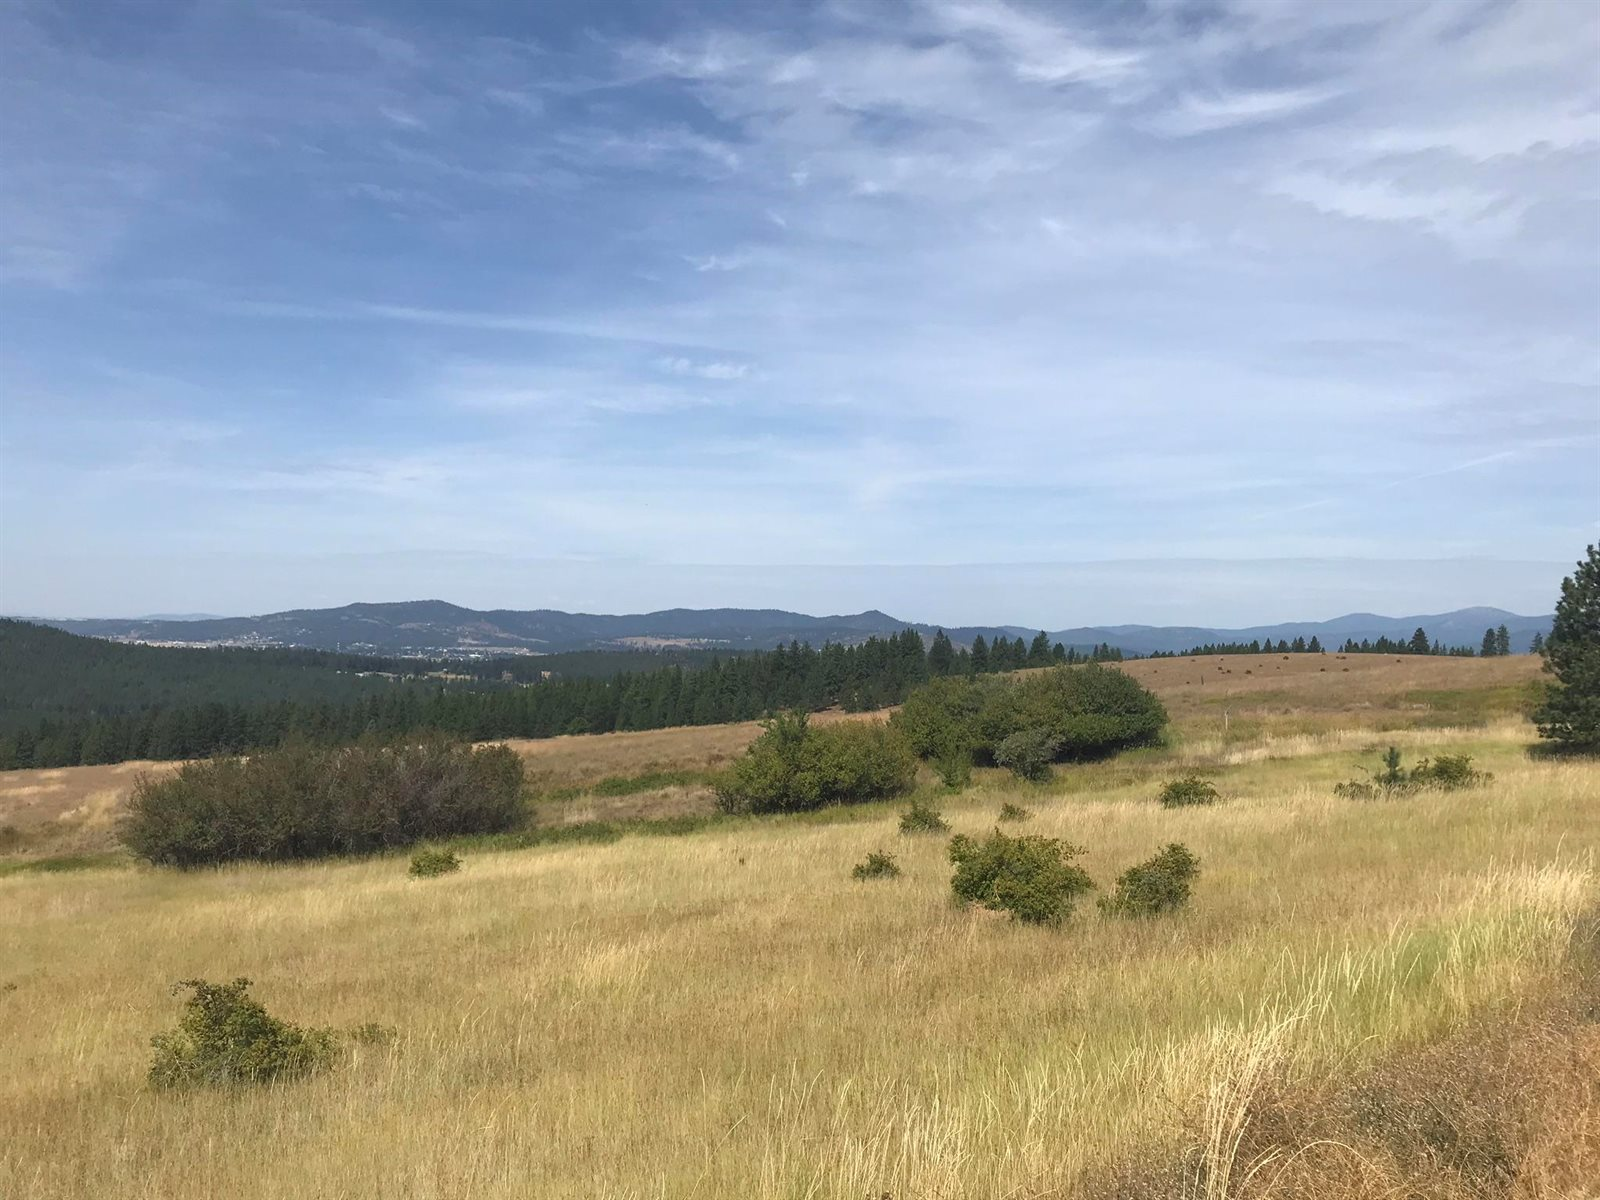 3572 South State Line Rd, Post Falls, ID 83854